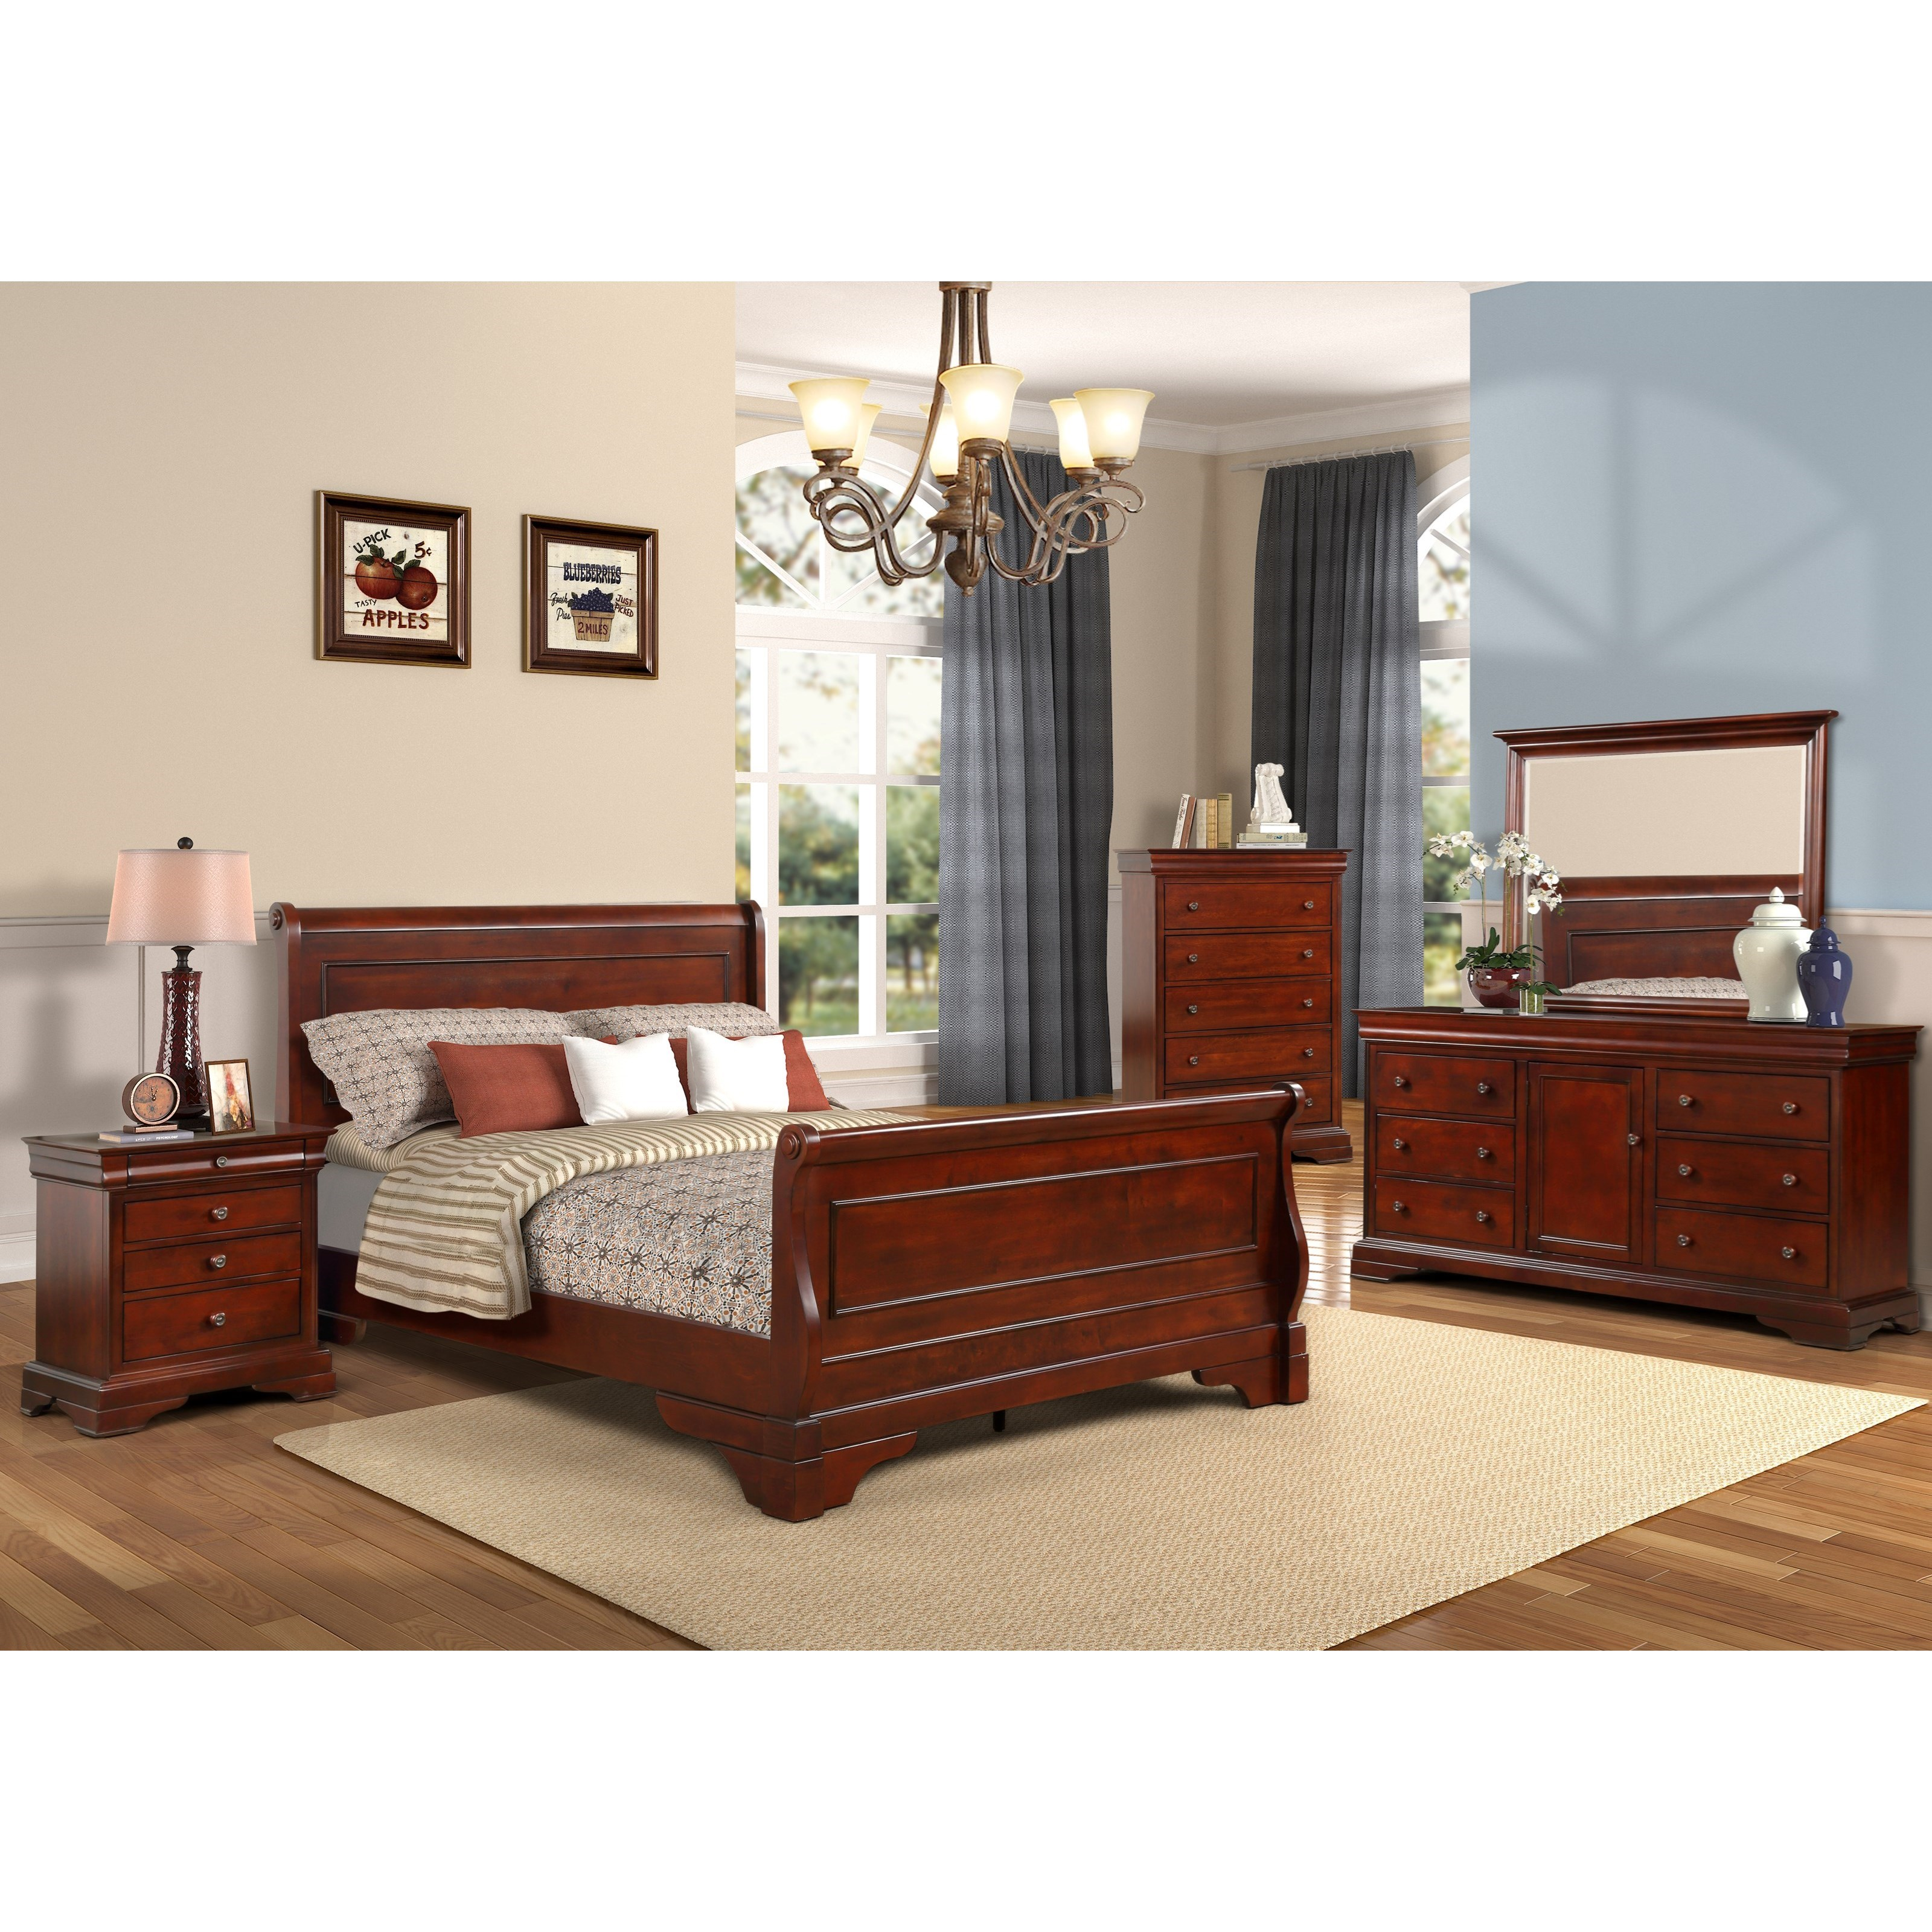 Versaille Full Bedroom Group by New Classic at H.L. Stephens